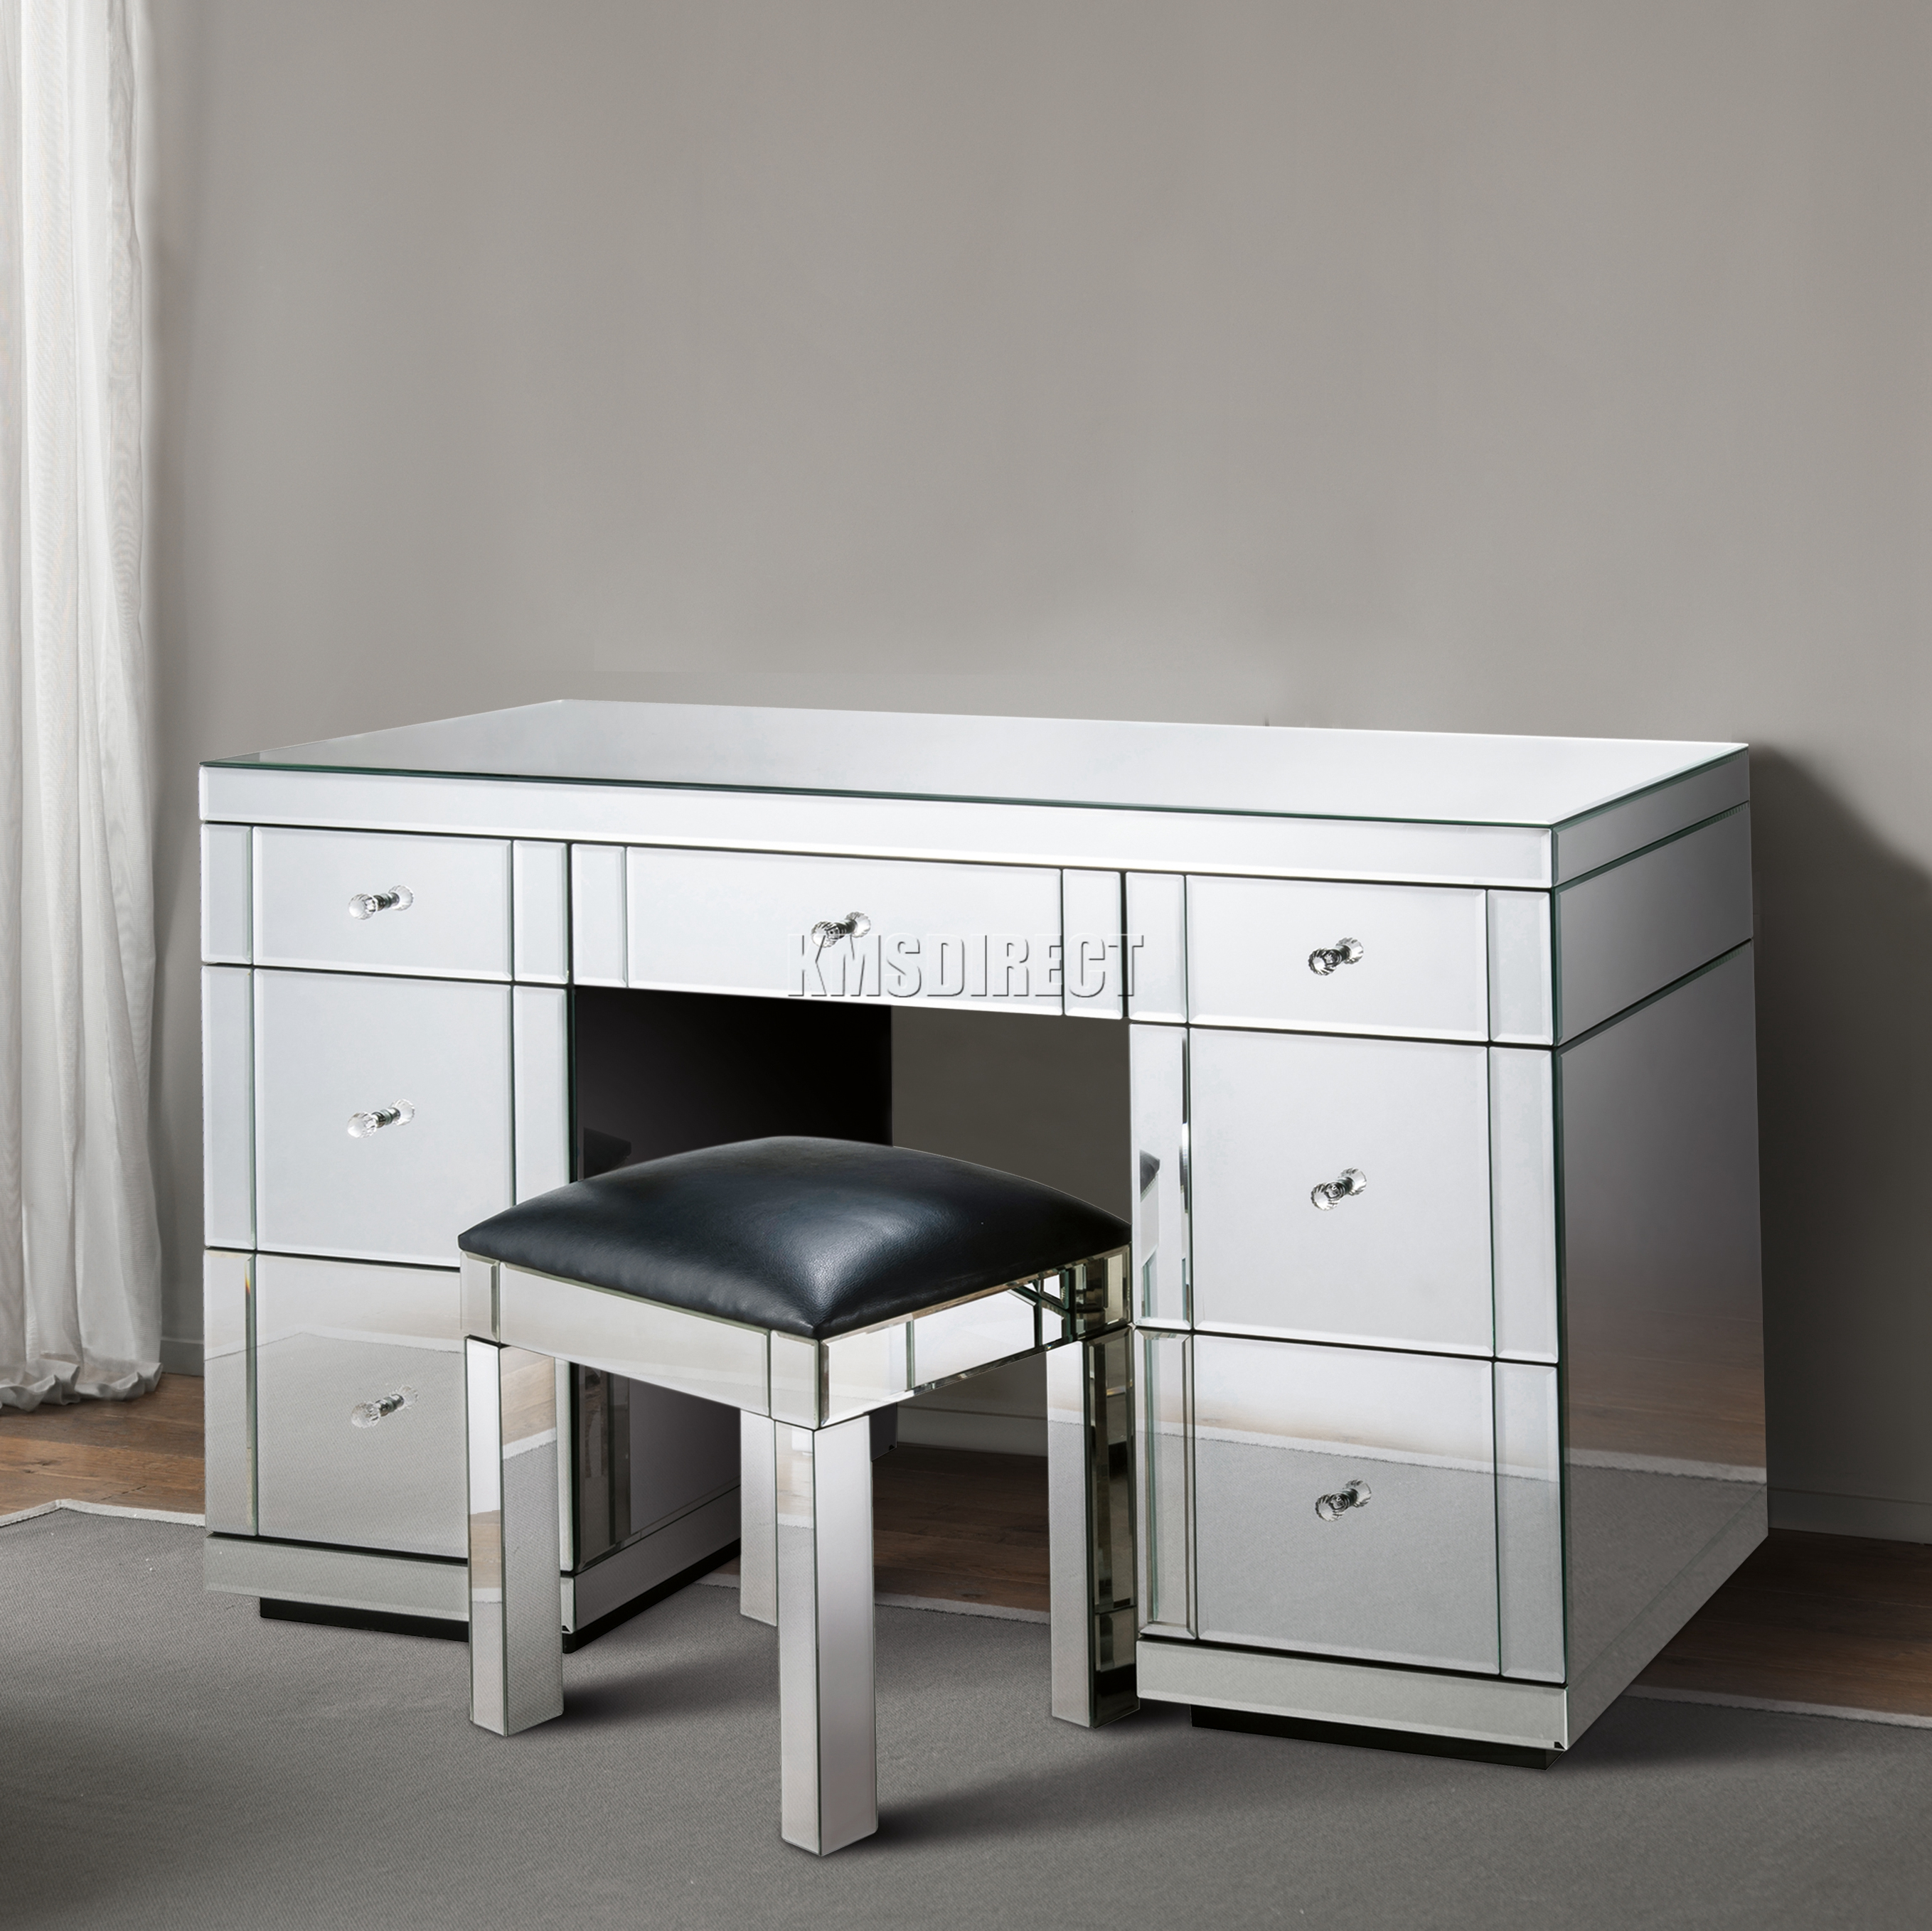 Foxhunter Mirrored Furniture Glass Dressing Table With Drawer Console Bedroom Ebay